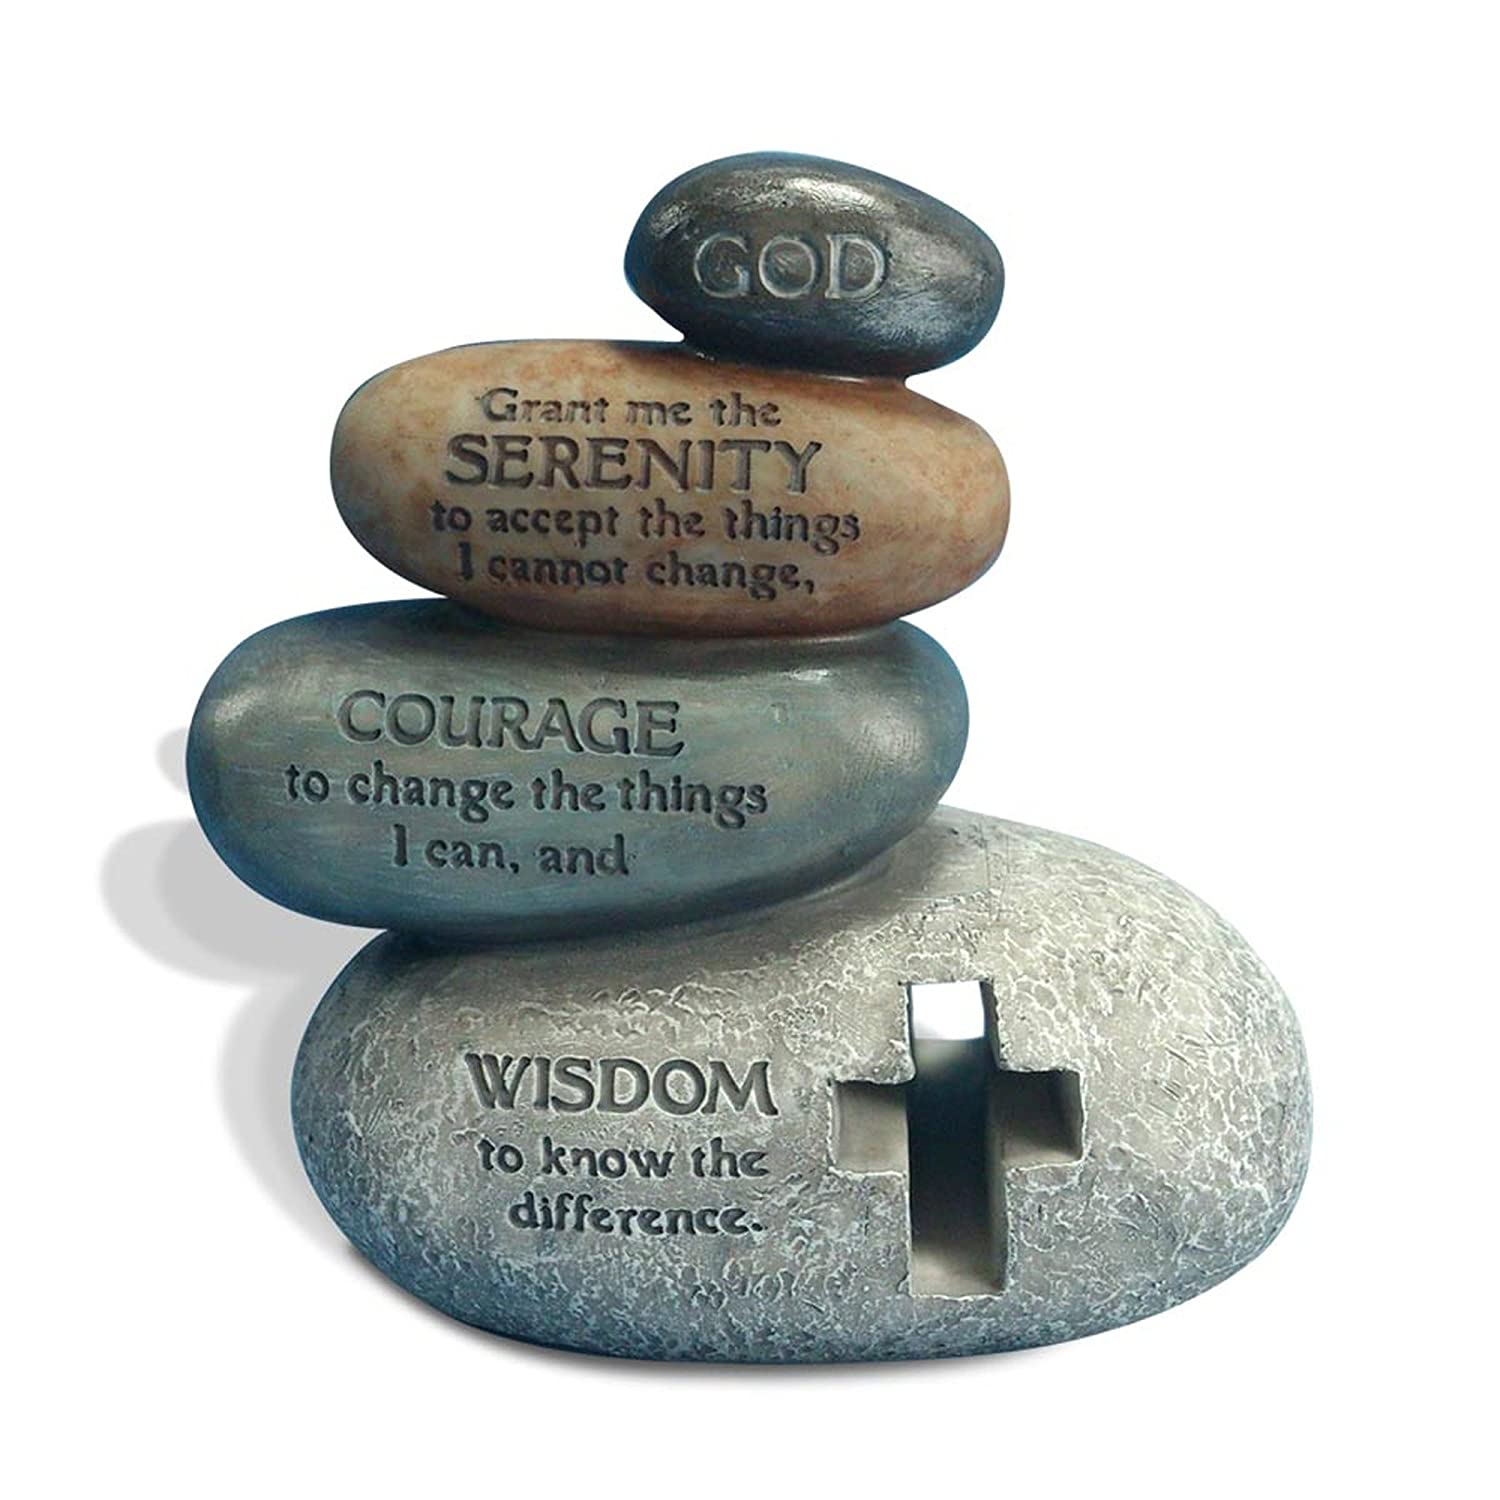 Enesco Legacy of Love by Gregg Gift Stacked Serenity Prayer Stones Stone Resin Figurine 5.5/""